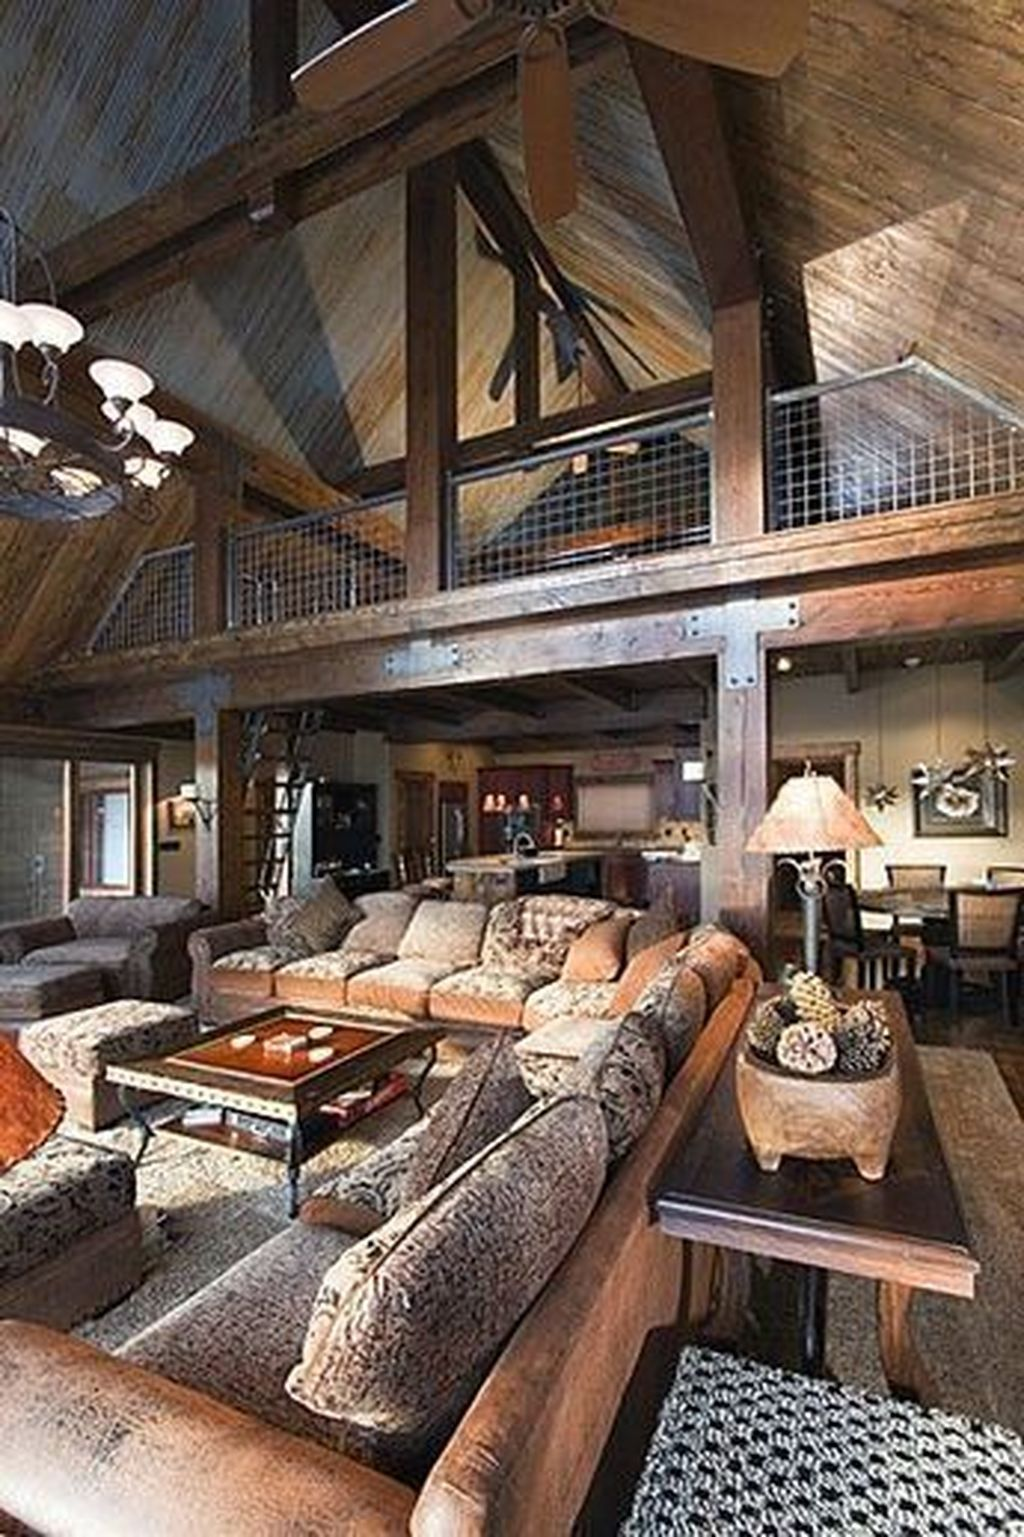 47 Relaxing Cabins Room Design Ideas For Getaways This Holid